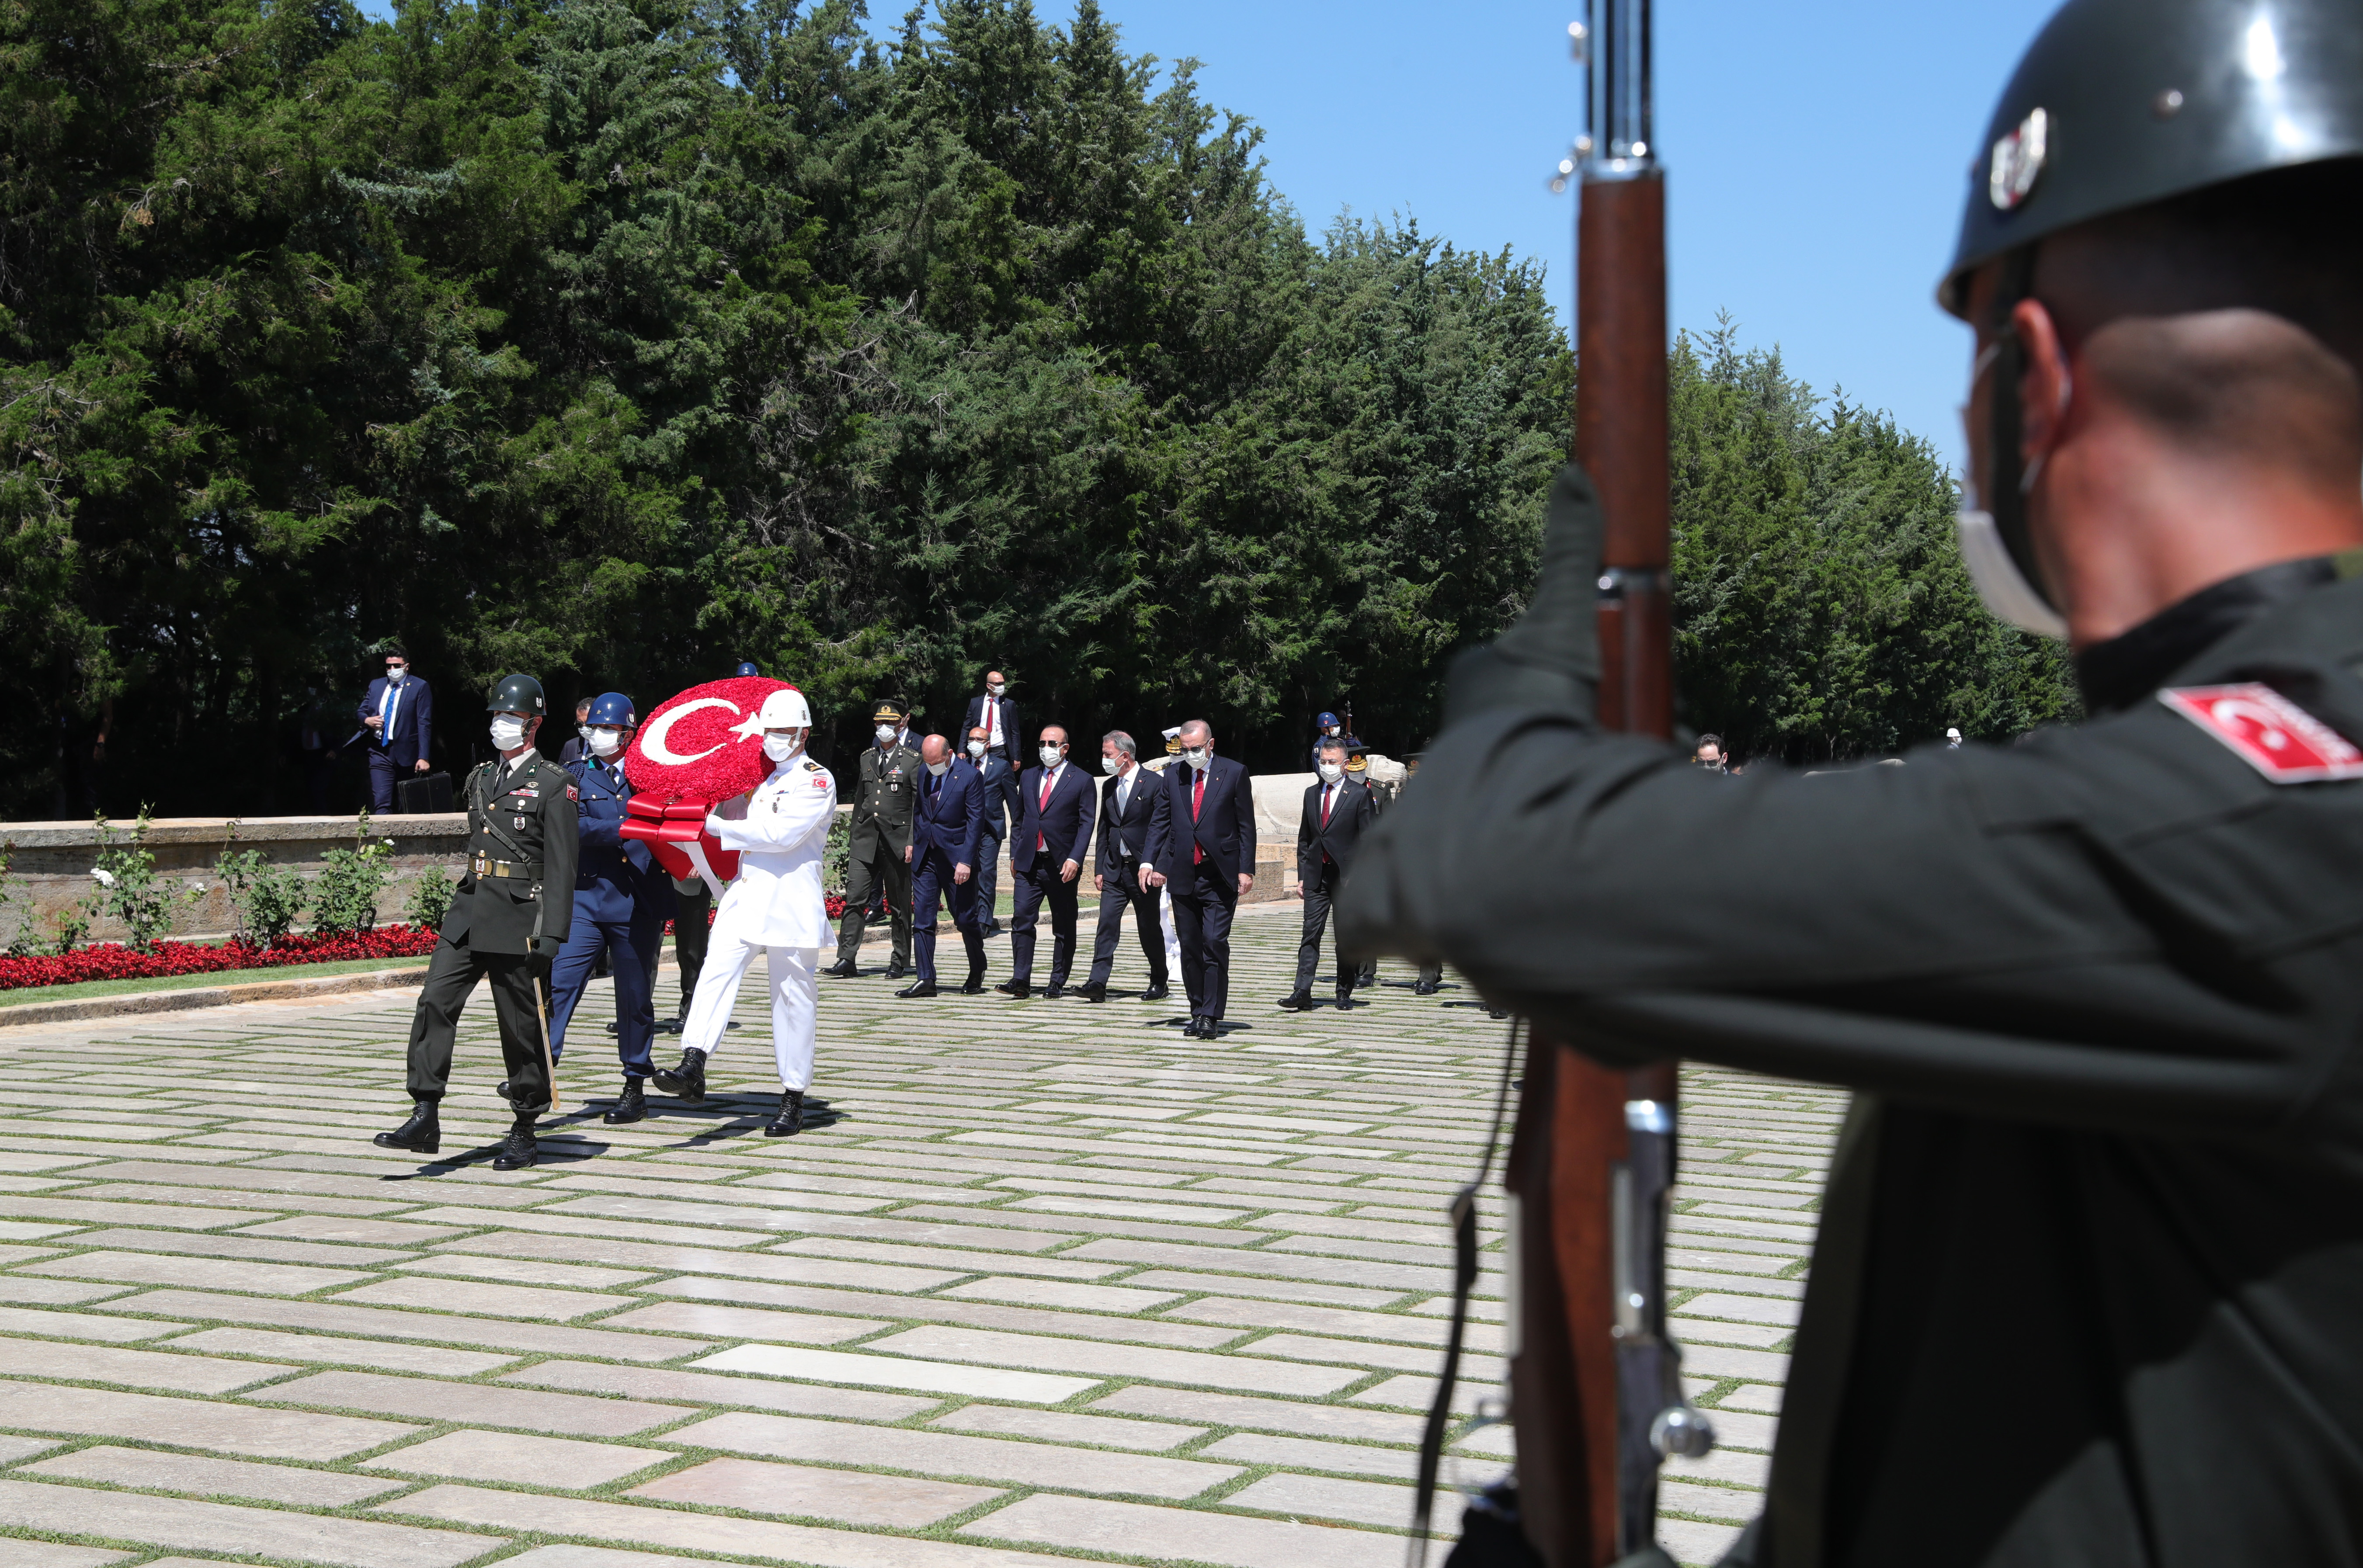 President Erdoğan and members of the Supreme Military Council visited Anıtkabir (Atatürk's Mausoleum) before the meeting of the Supreme Military Council